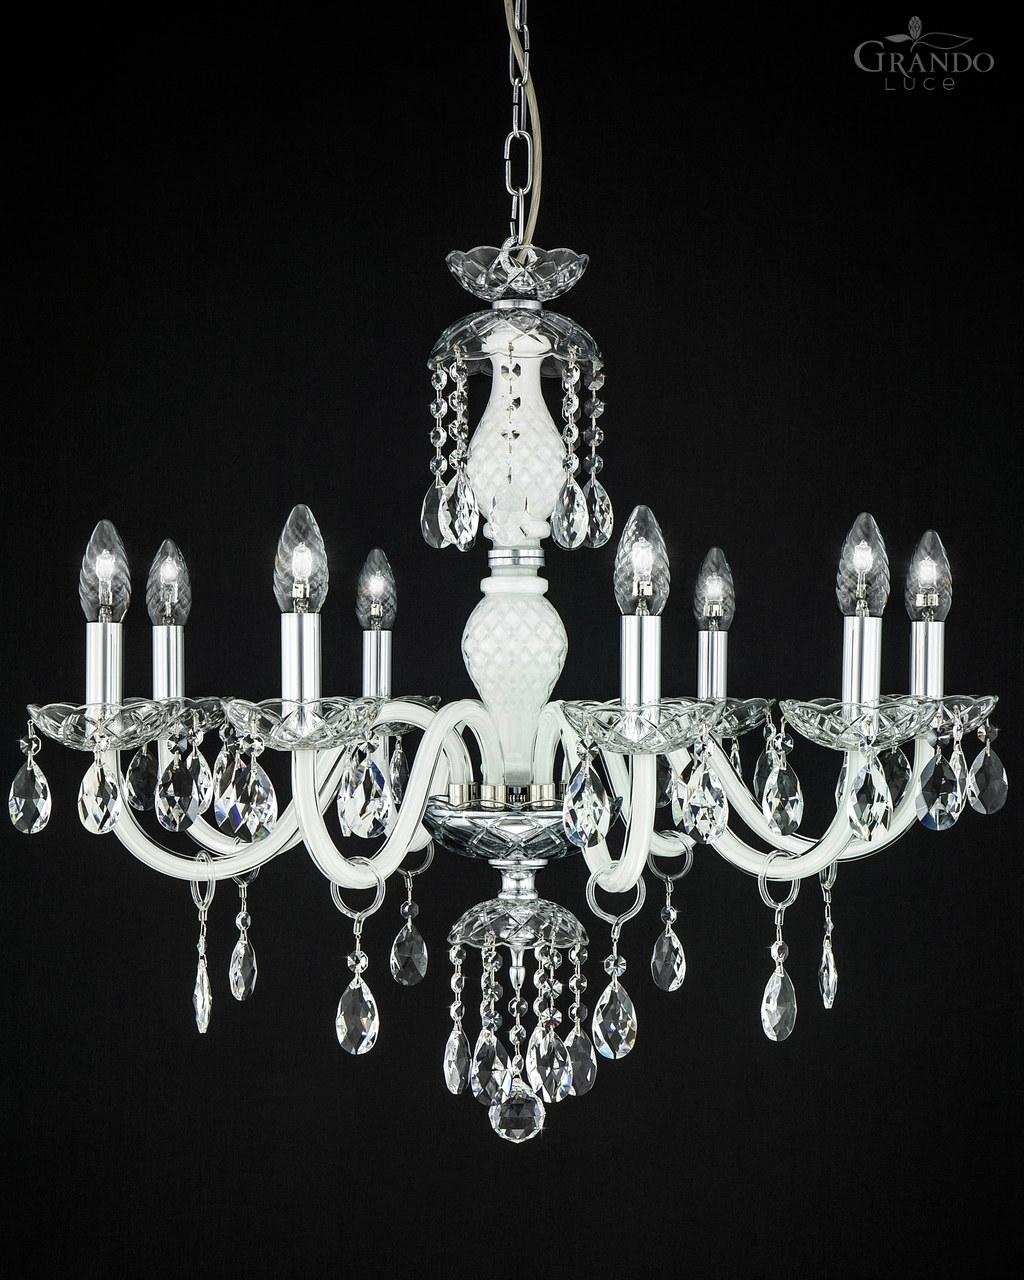 1048 Ch Chrome White Crystal Chandelier With Swrovski Spectra Regarding Crystal And Chrome Chandeliers (Image 1 of 15)